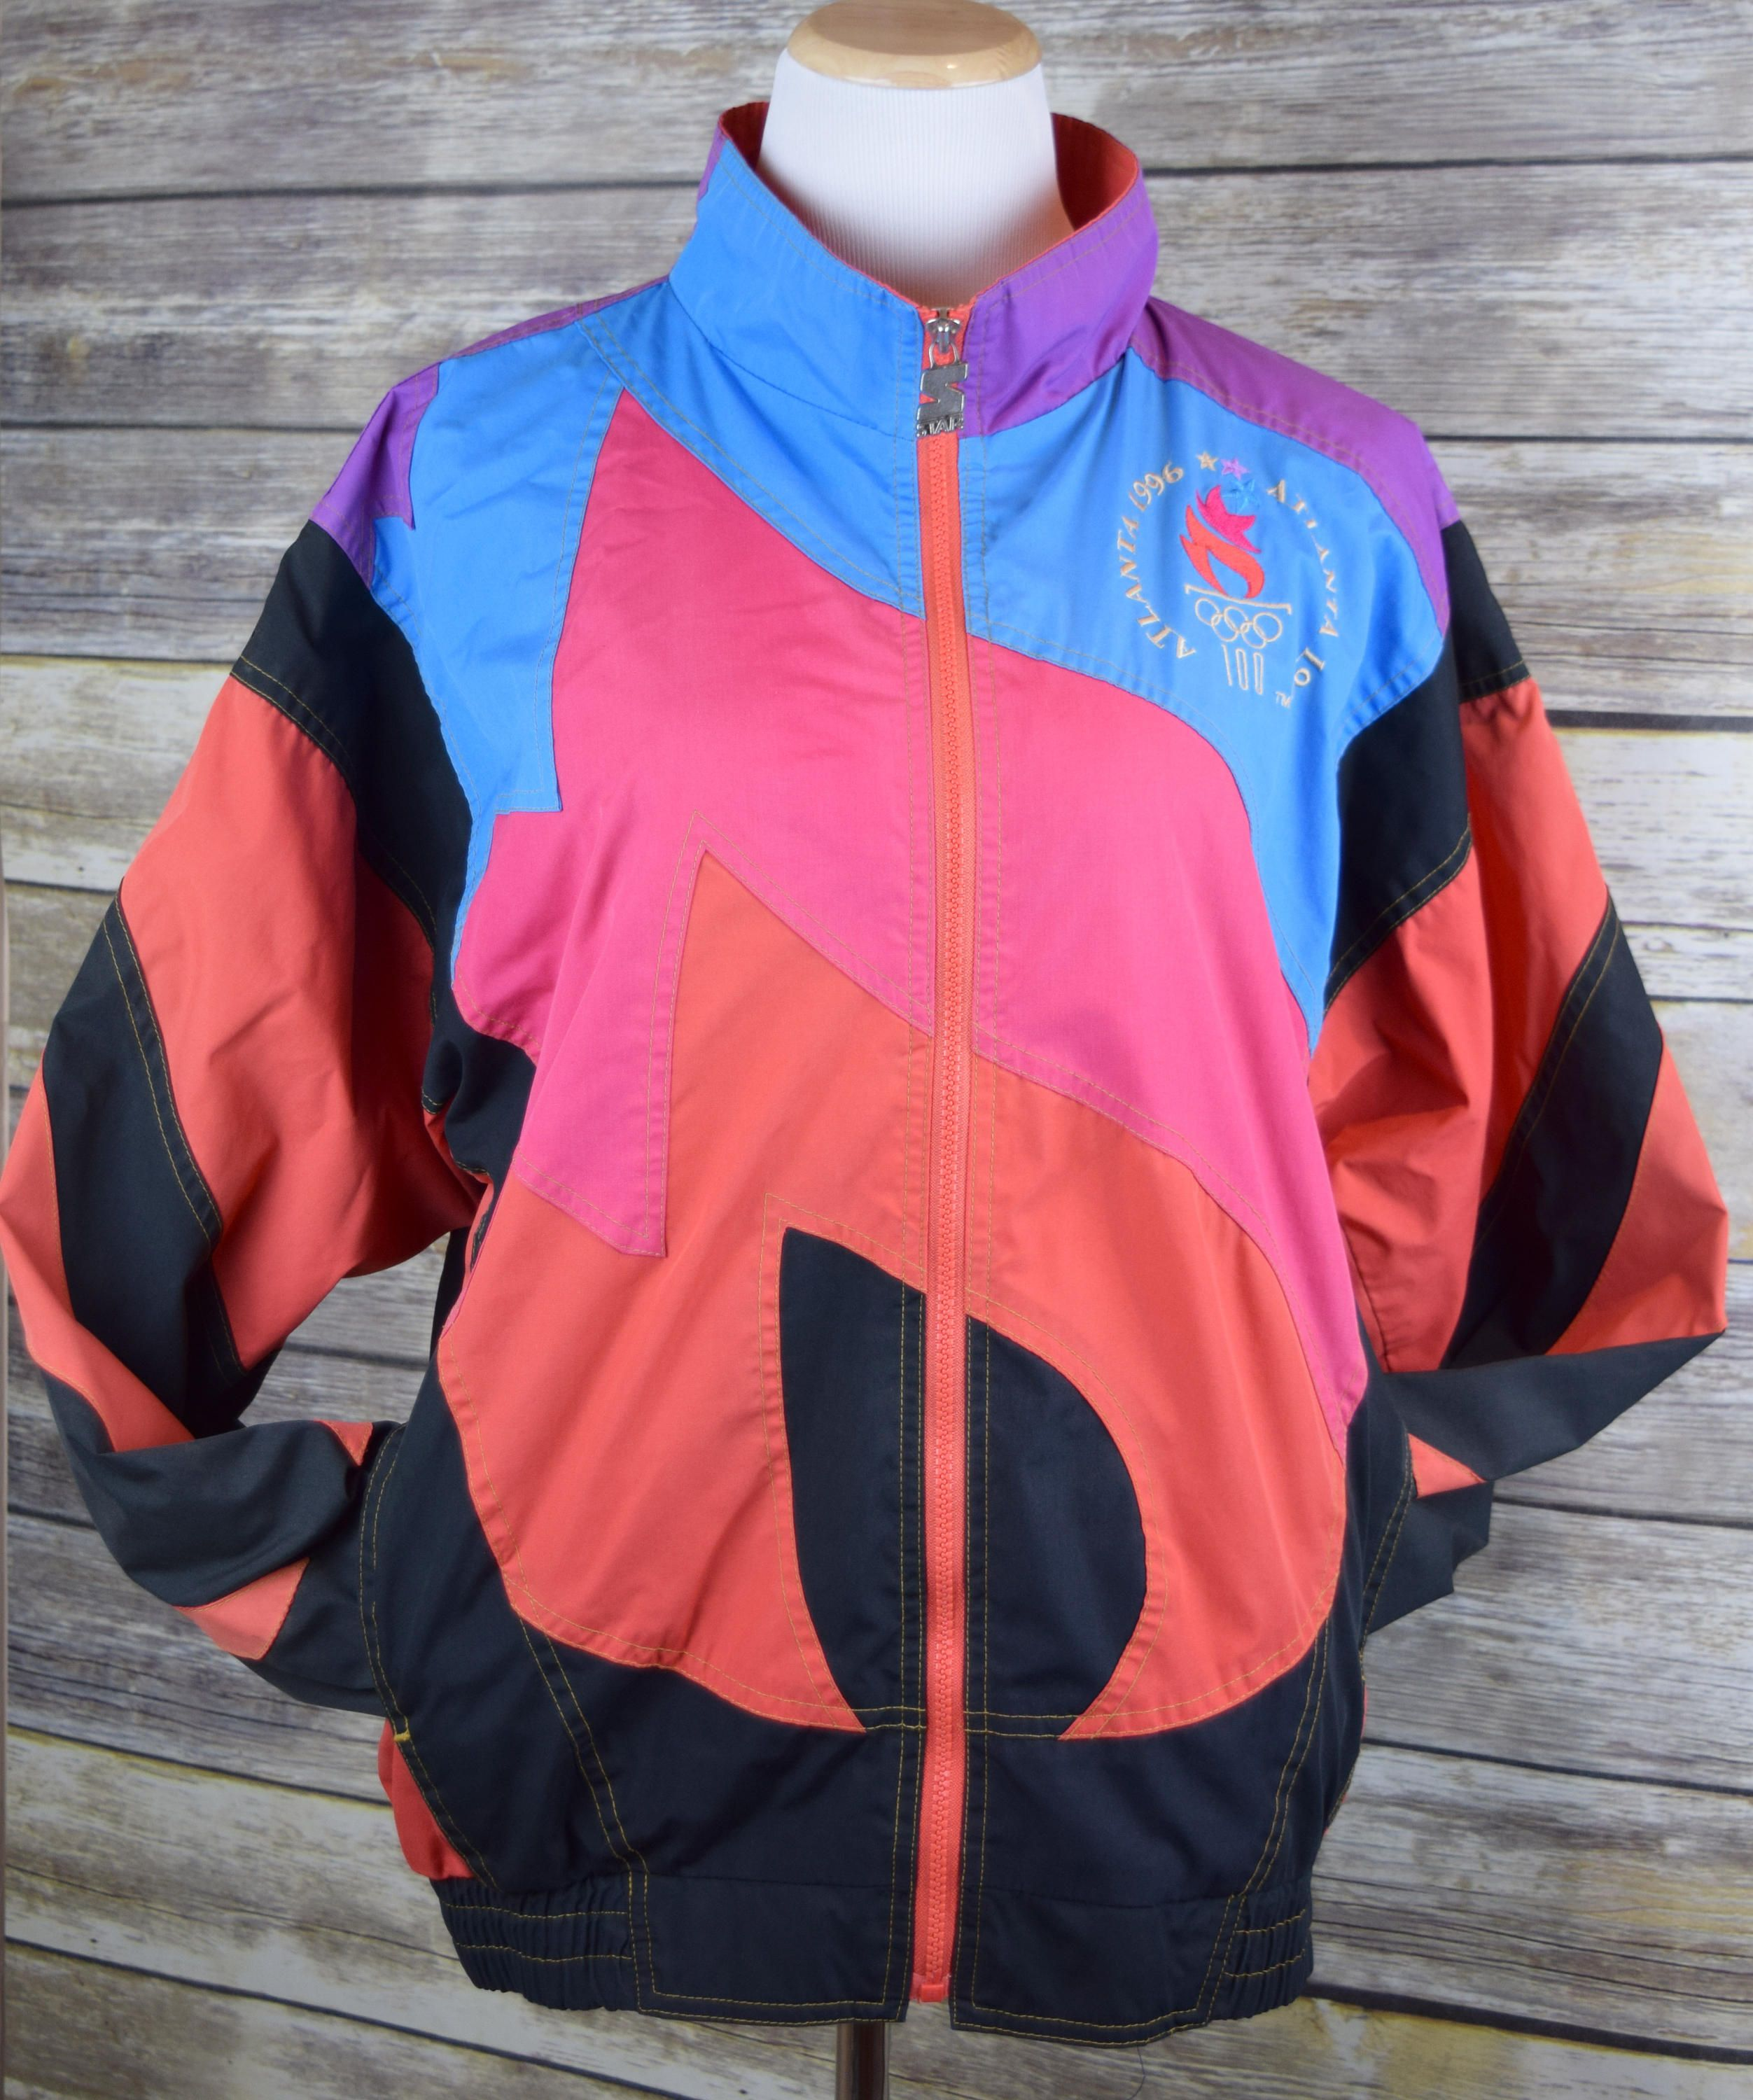 6f48a9c9c79a RARE Men s L Starter Atlanta 1996 Olympics Color Block Flame Windbreaker  Jacket by GVvintageswoon on Etsy